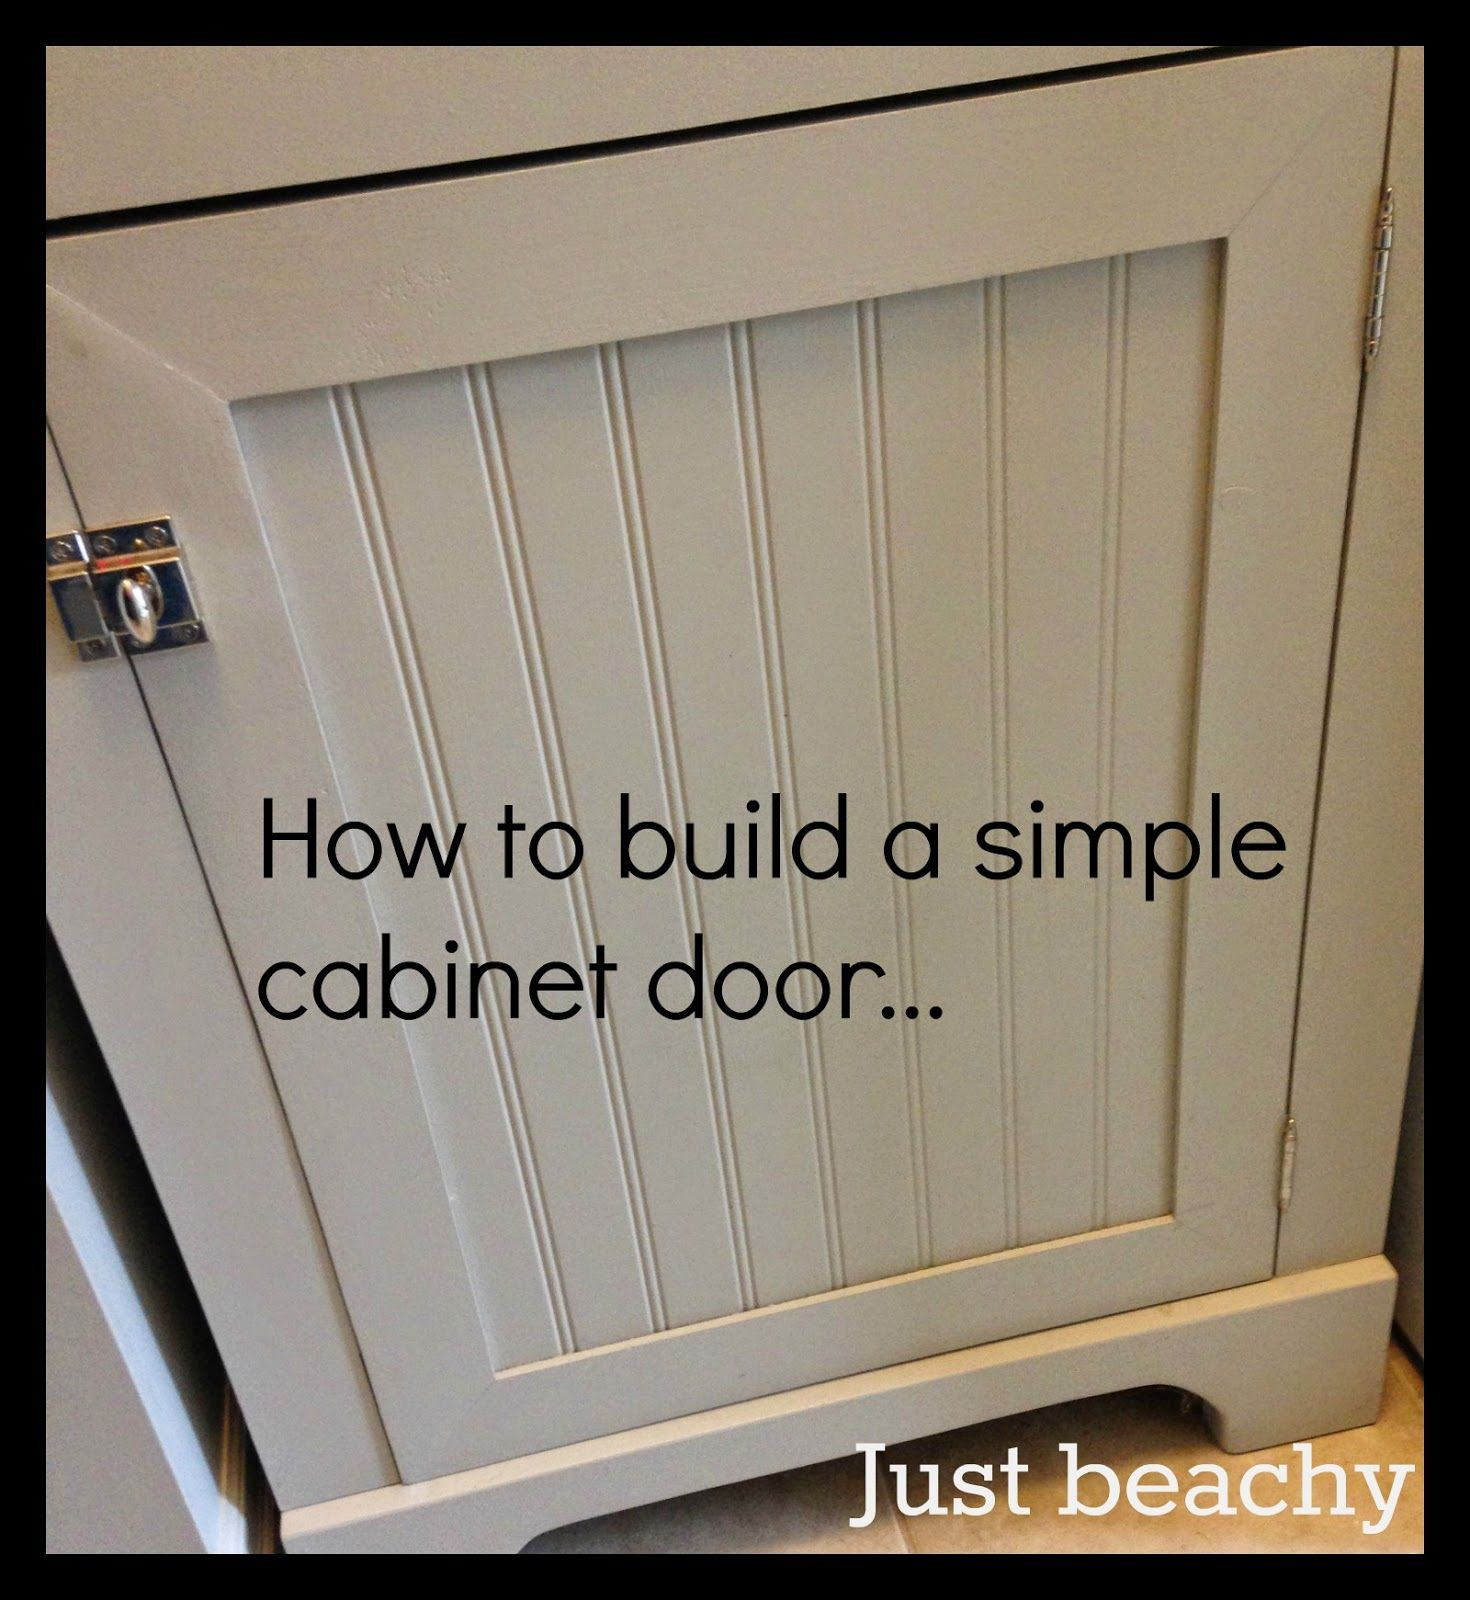 diy tutorial how to build simple shaker style cabinet doors new homeowner pinterest. Black Bedroom Furniture Sets. Home Design Ideas